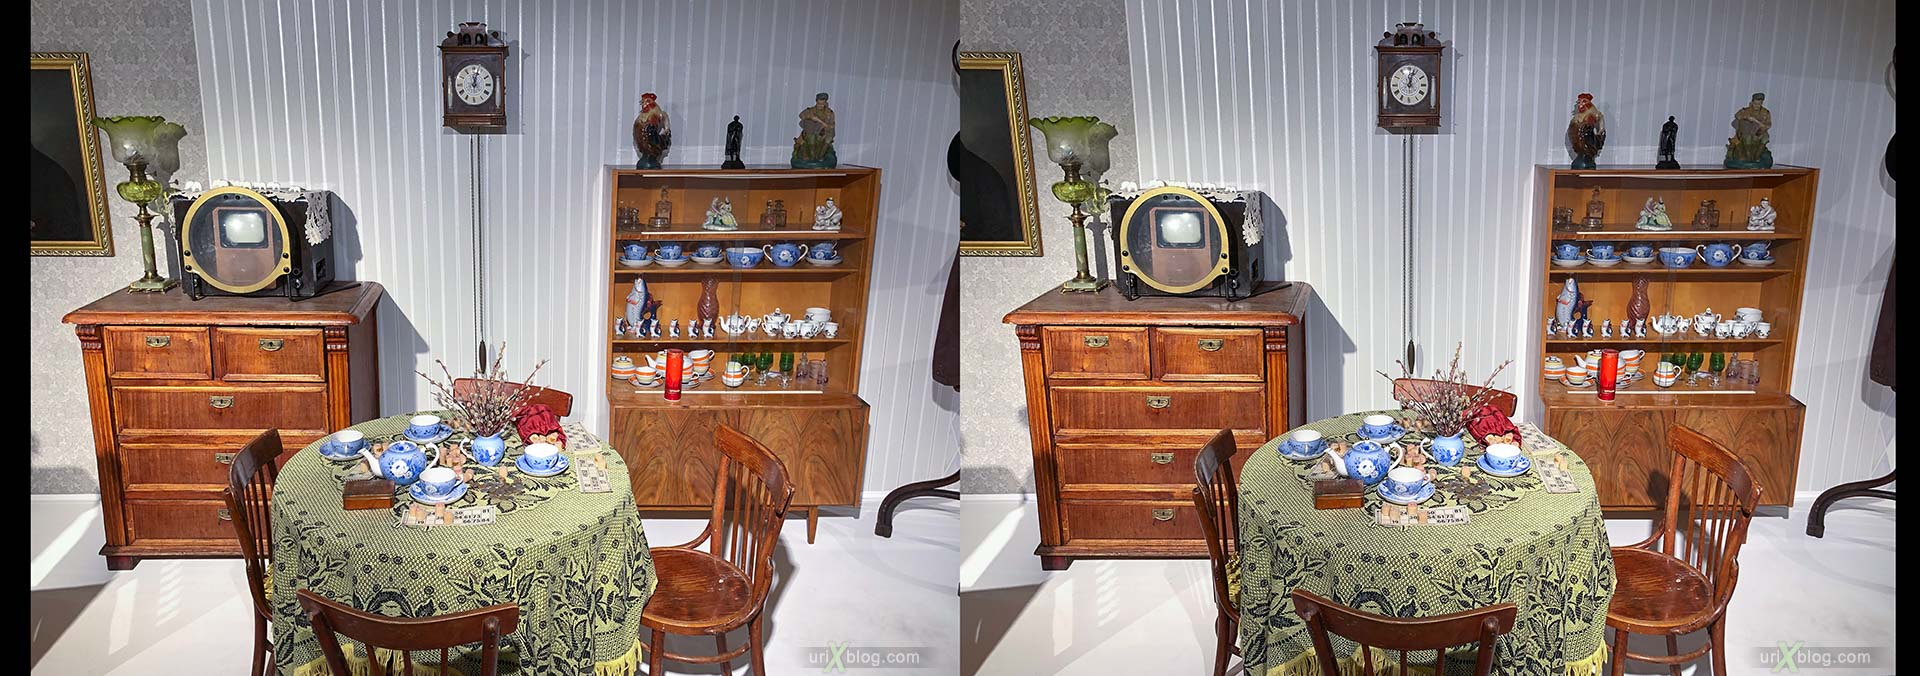 exhibition, Family values, Museum of Moscow, soviet life, apartment, toys, Moscow, Russia, 3D, stereo pair, cross-eyed, crossview, cross view stereo pair, stereoscopic